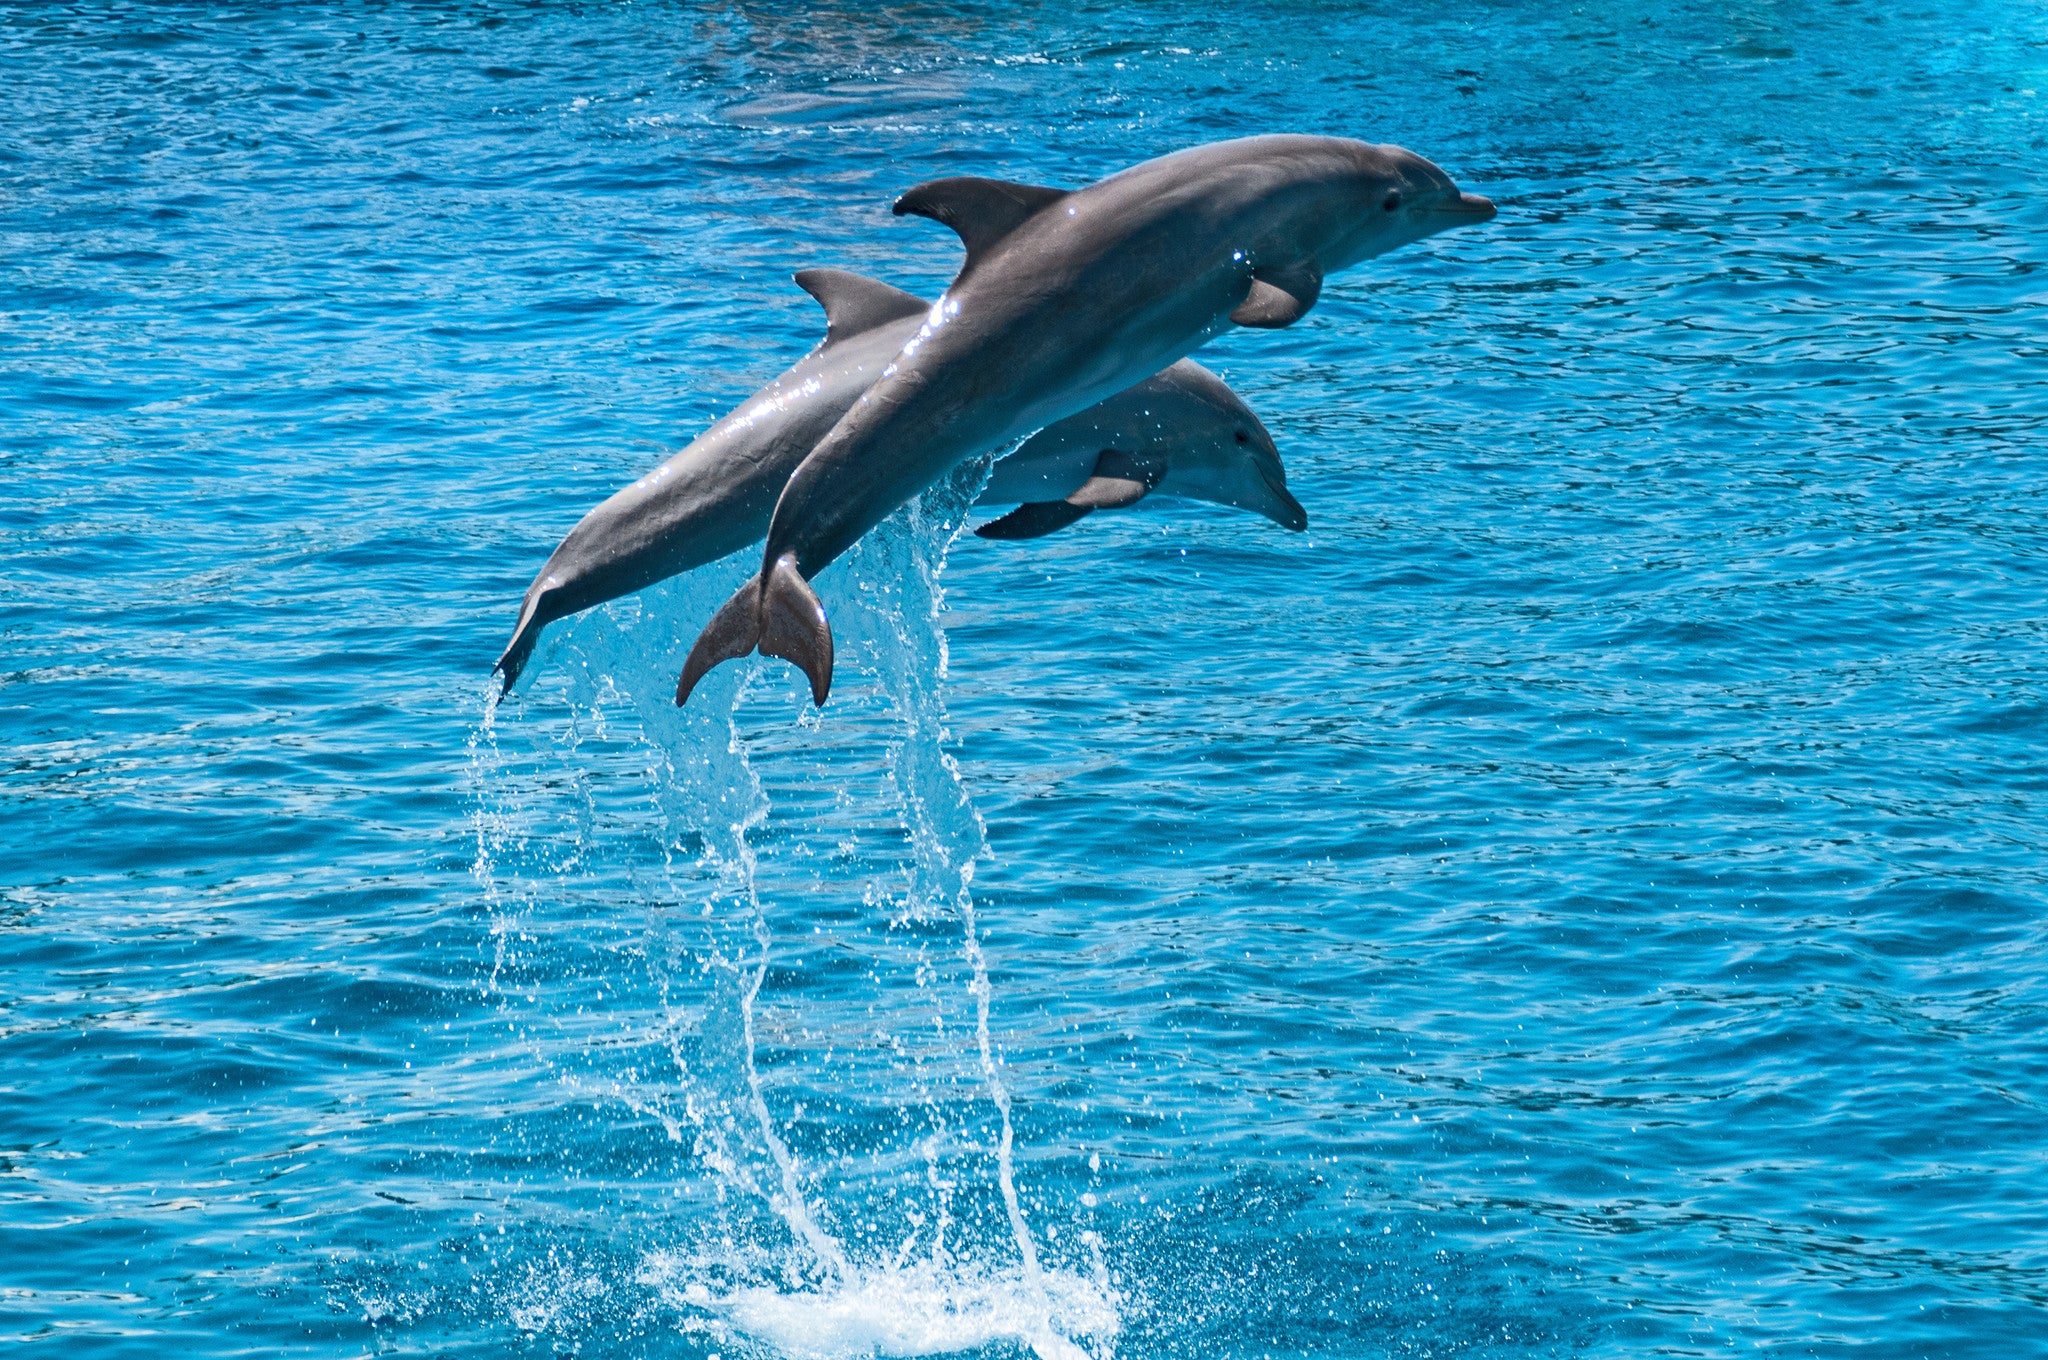 Dolphins in Flight